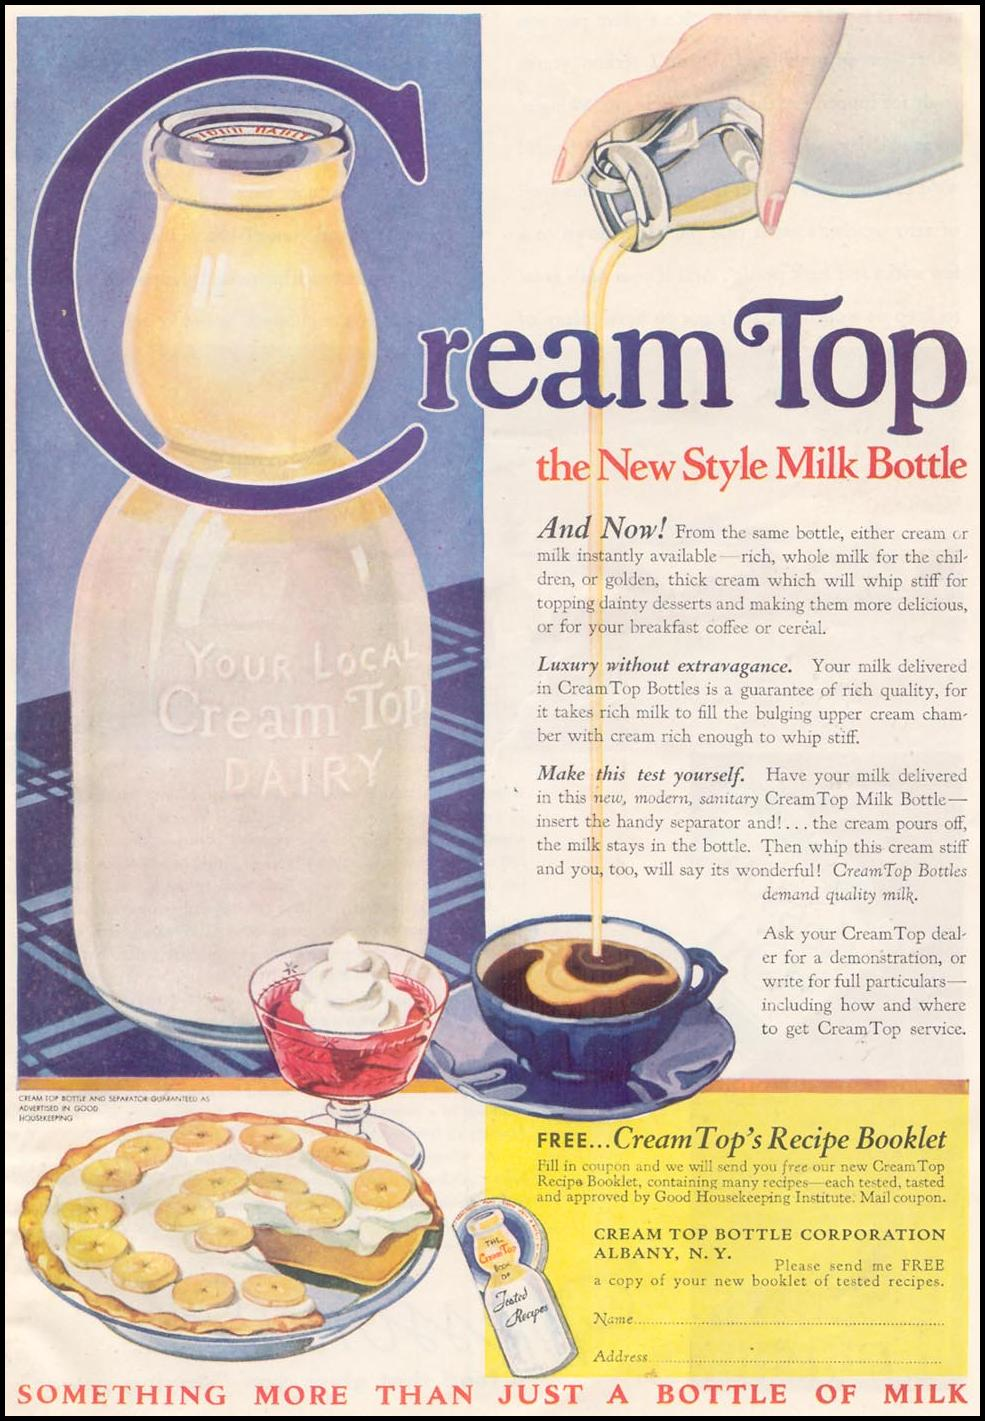 CREAM TOP MILK BOTTLES